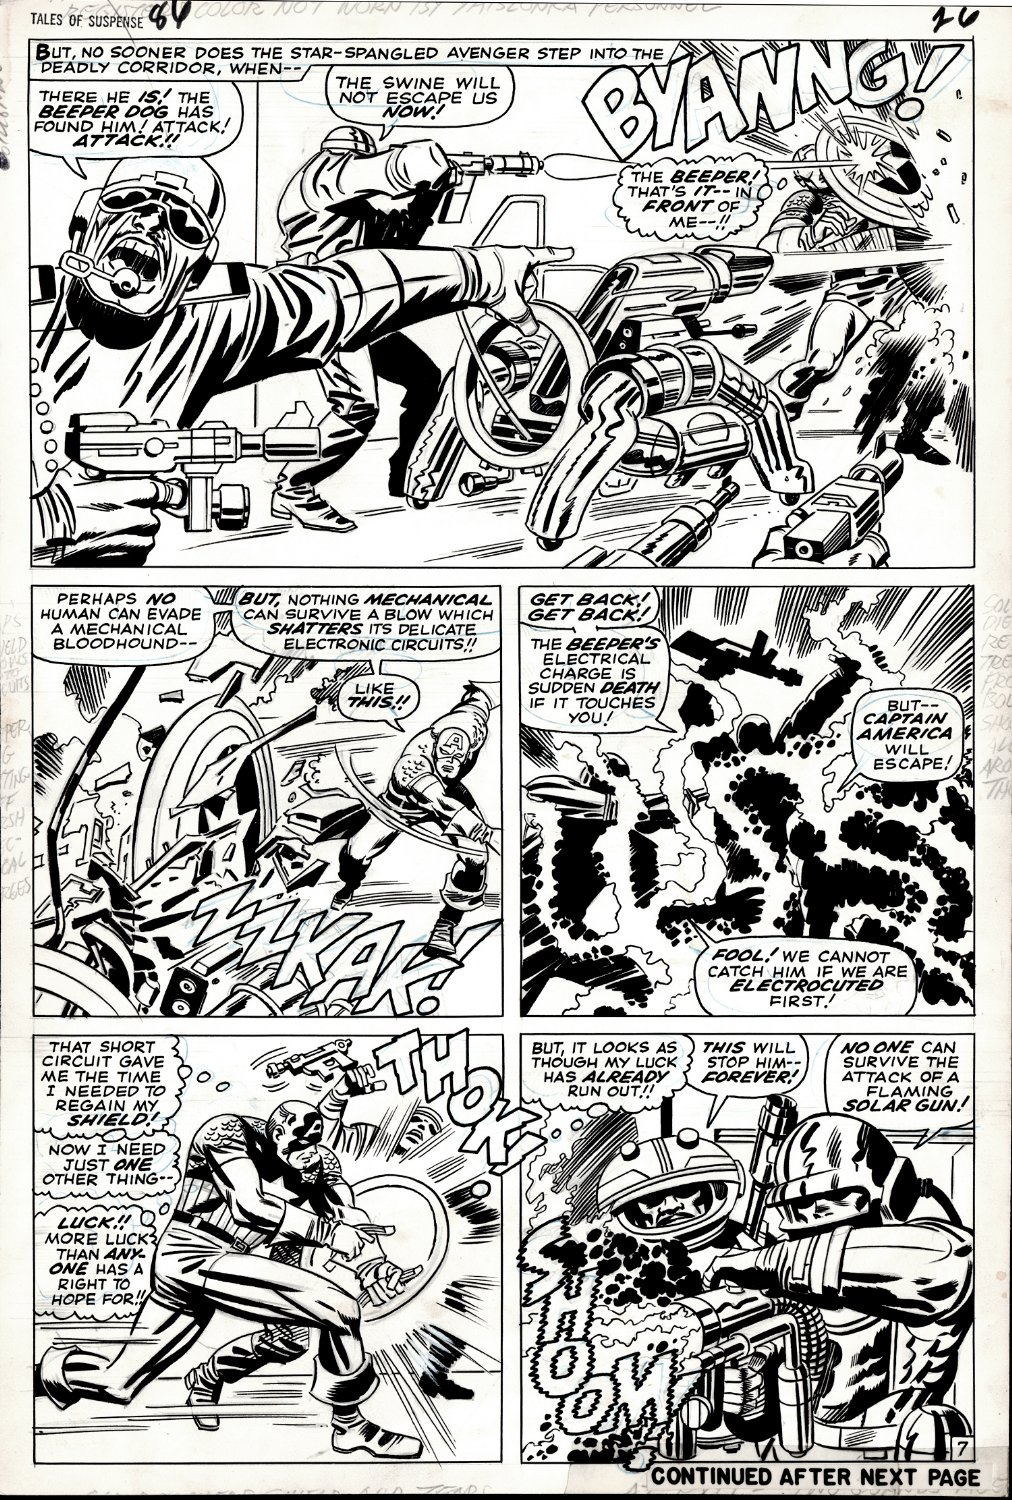 Tales of Suspense #86 p 7 (SPECTACULAR CAPTAIN AMERICA LARGE ART ALL OUT BATTLE PAGE!) 1966